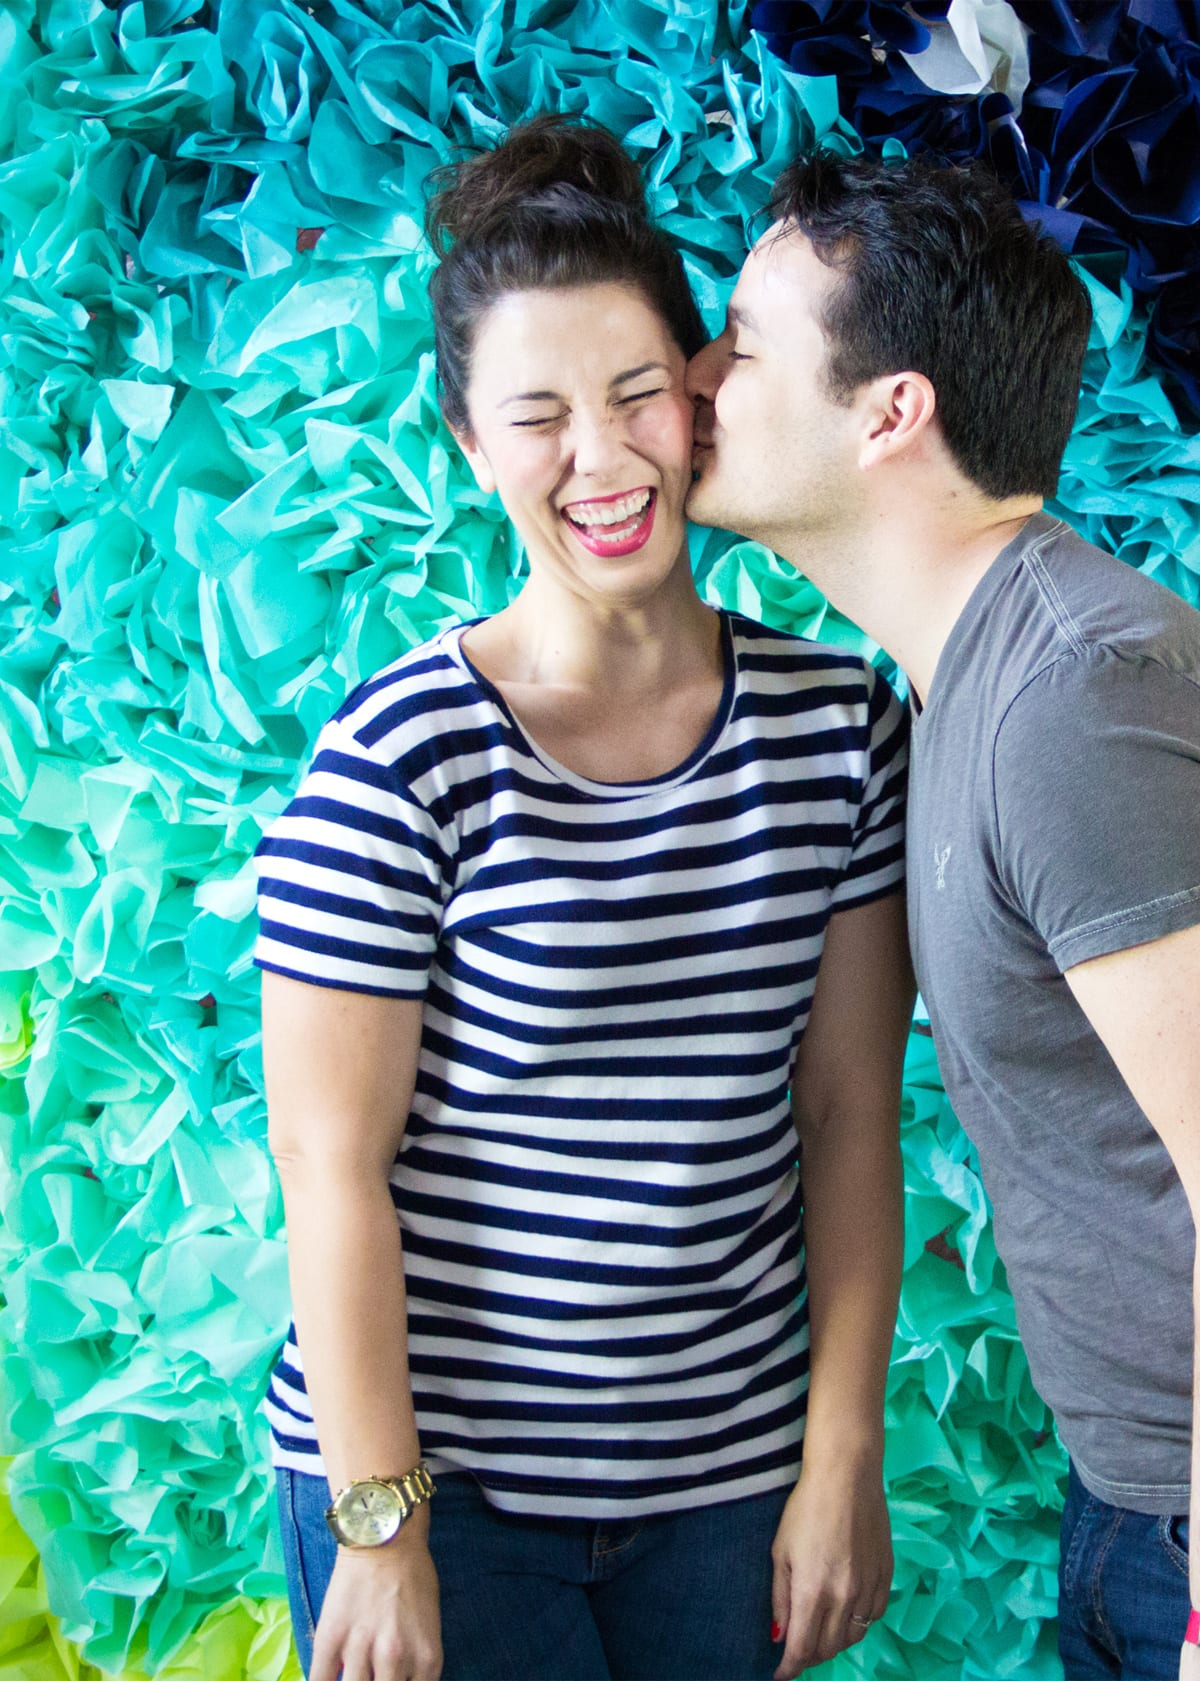 How to Make a Tissue Paper Photo Backdrop for Parties